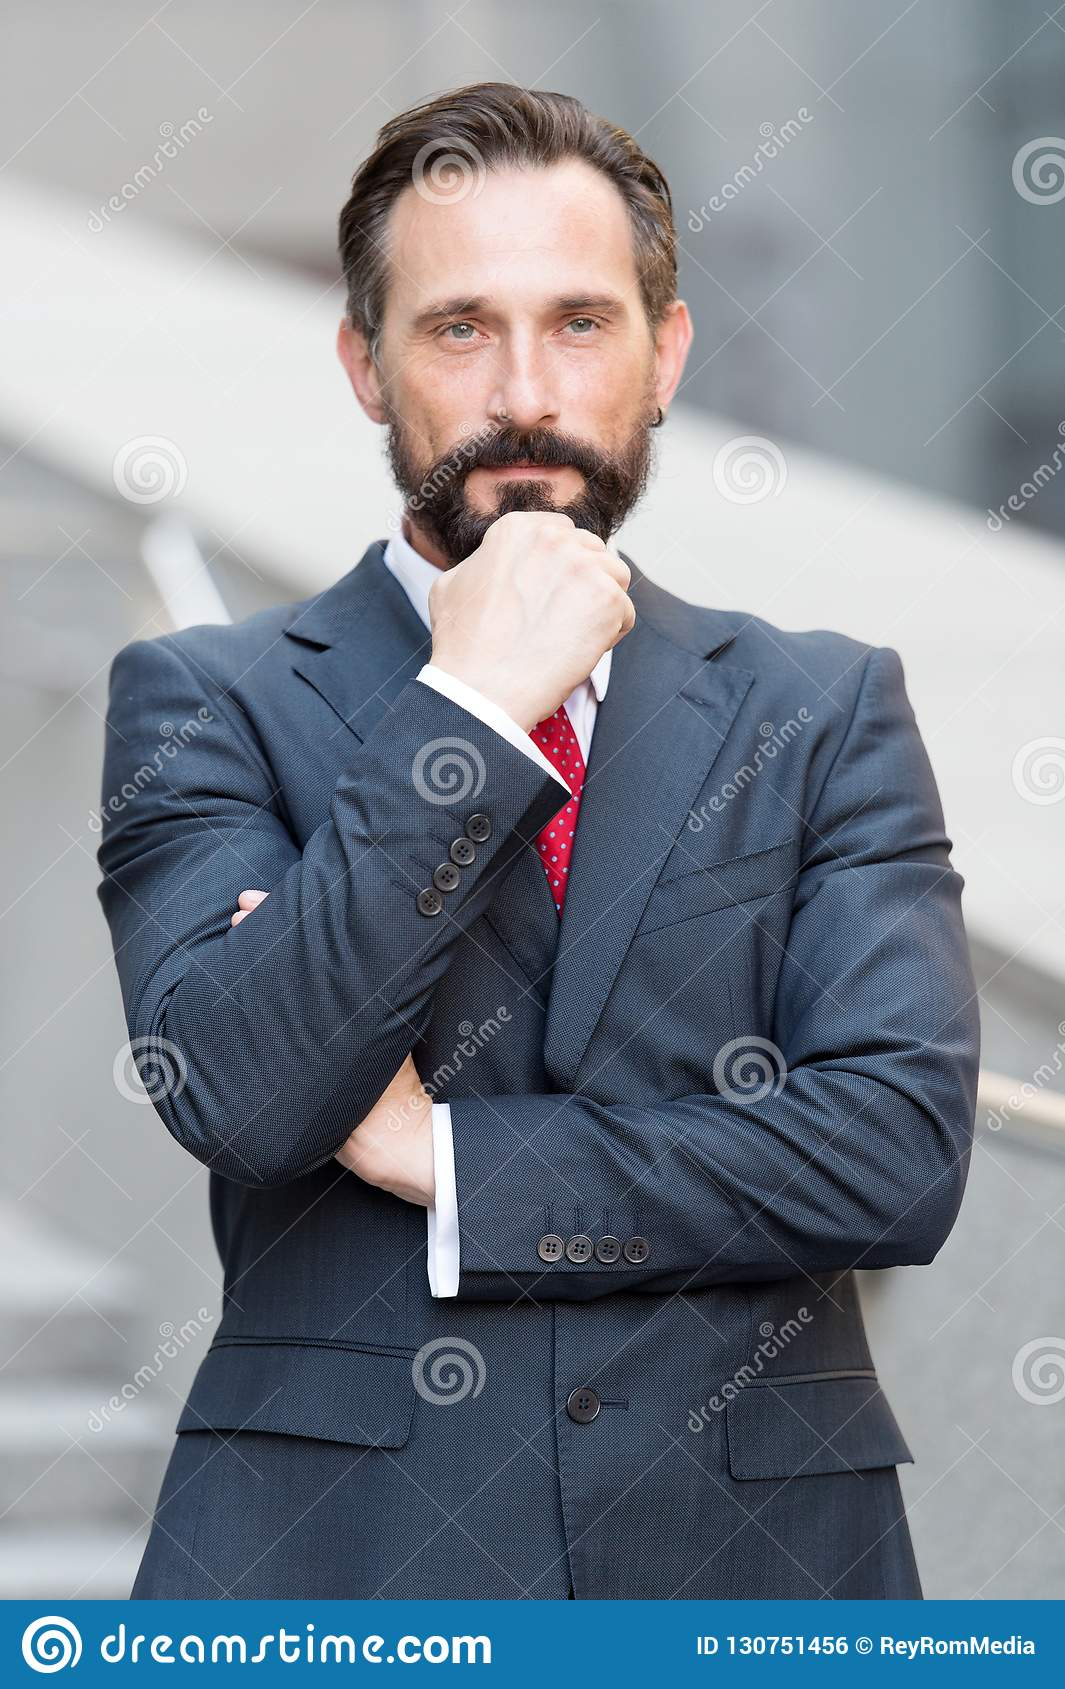 Waist up of calm man touching his beard and looking at you